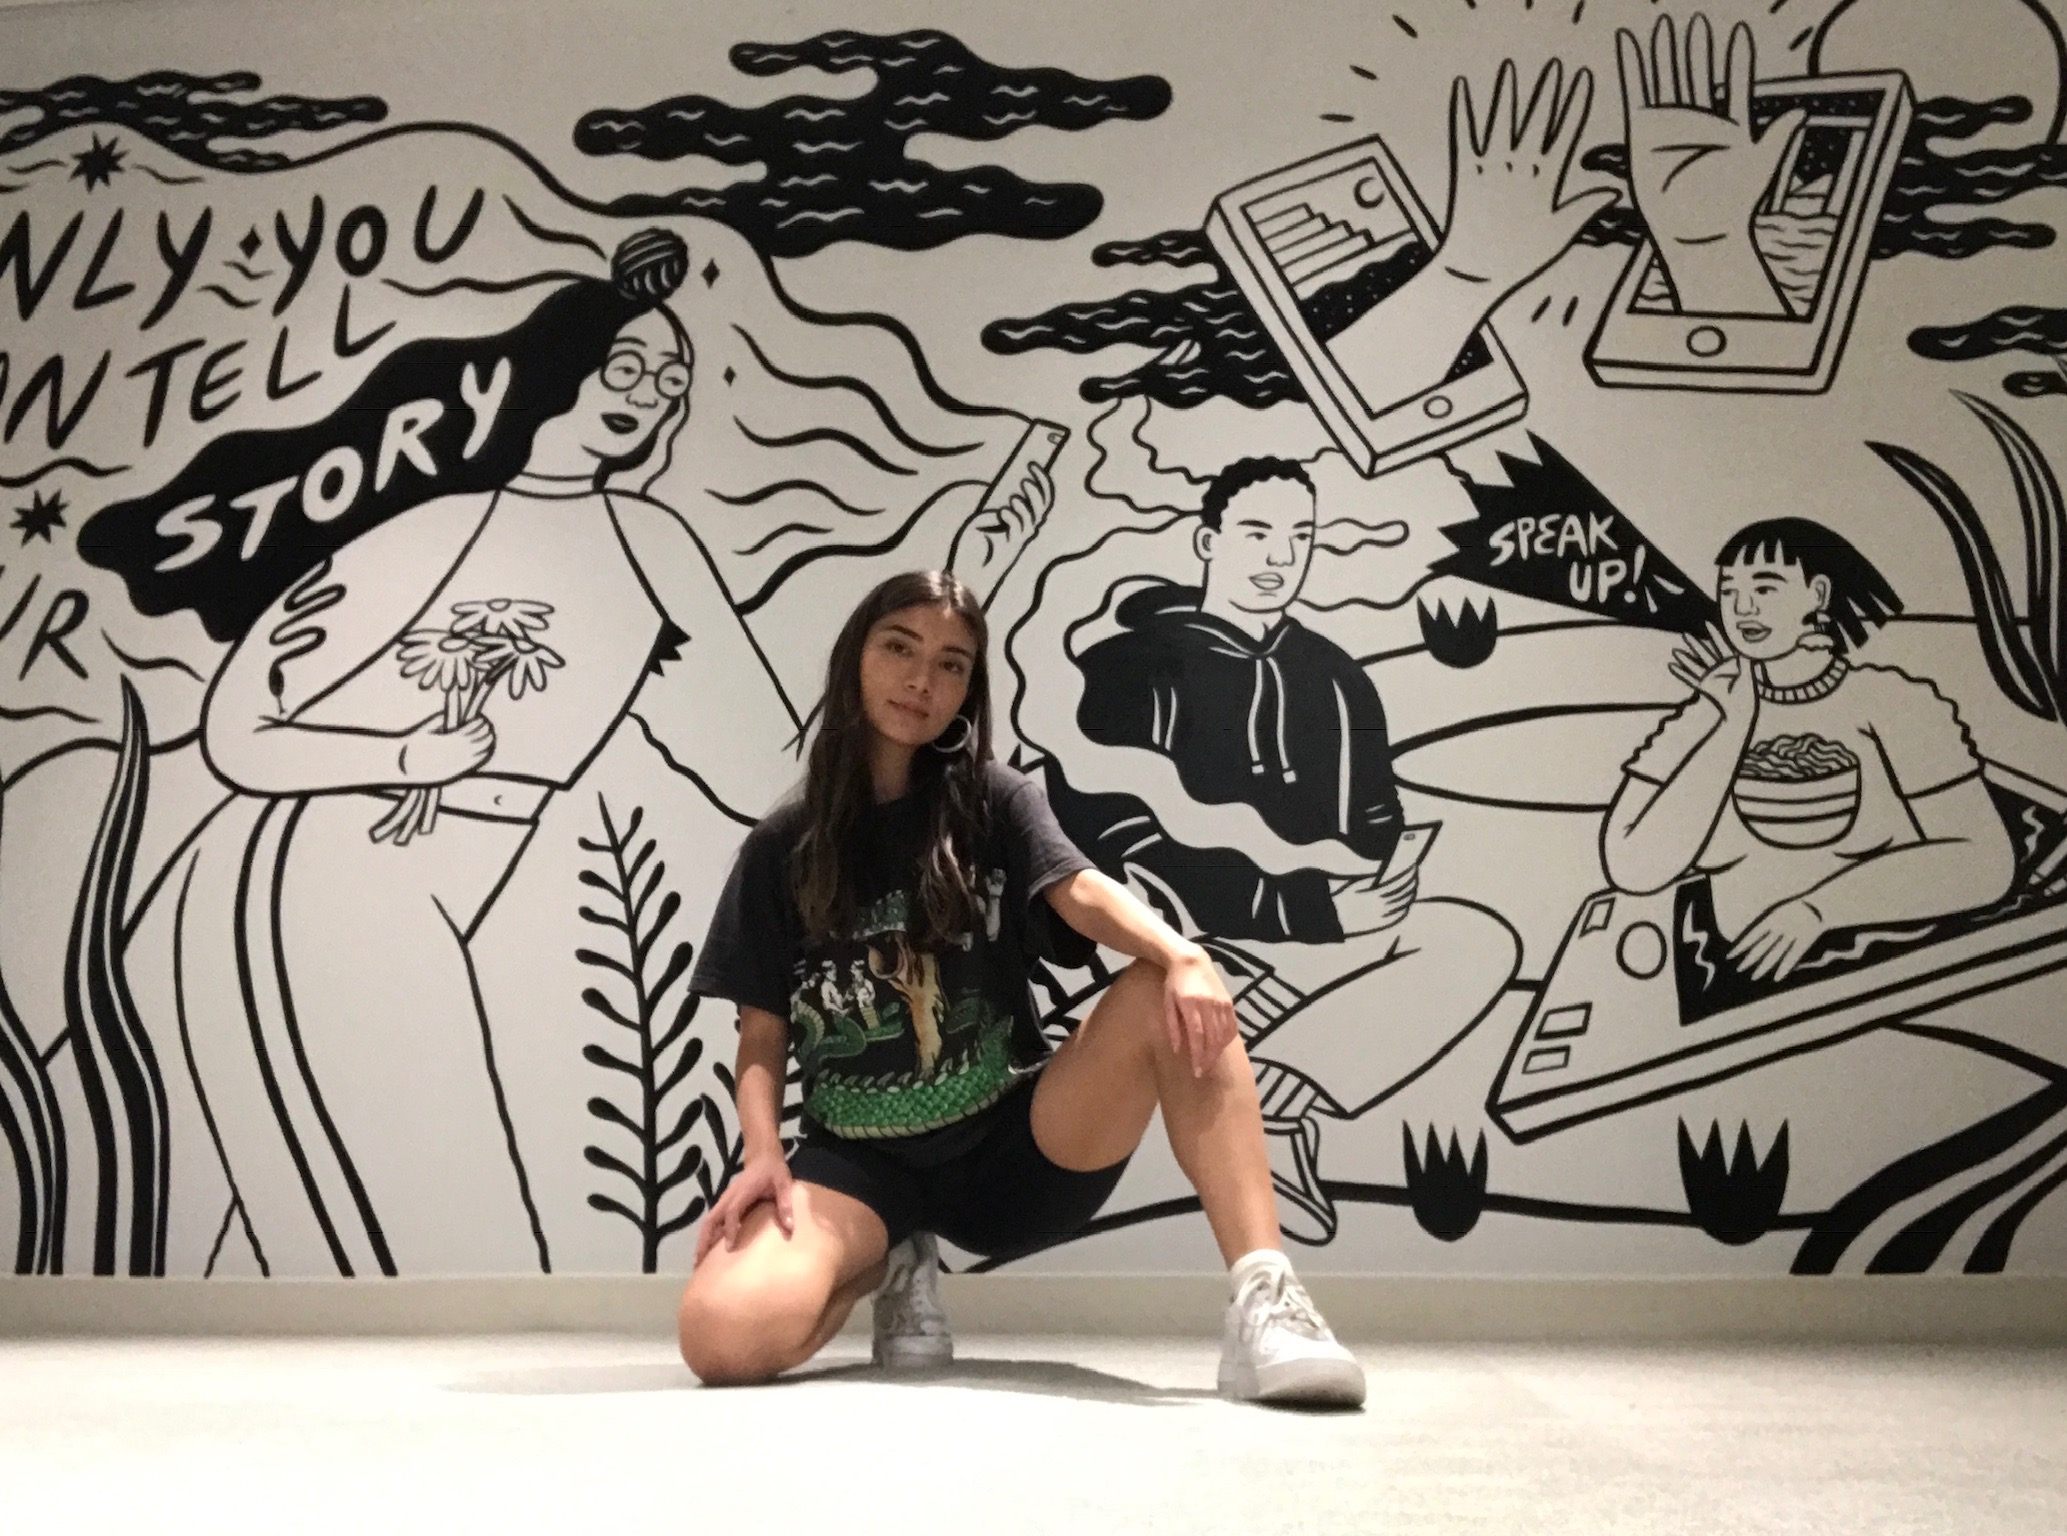 The night I finished up the piece. A proud squat.